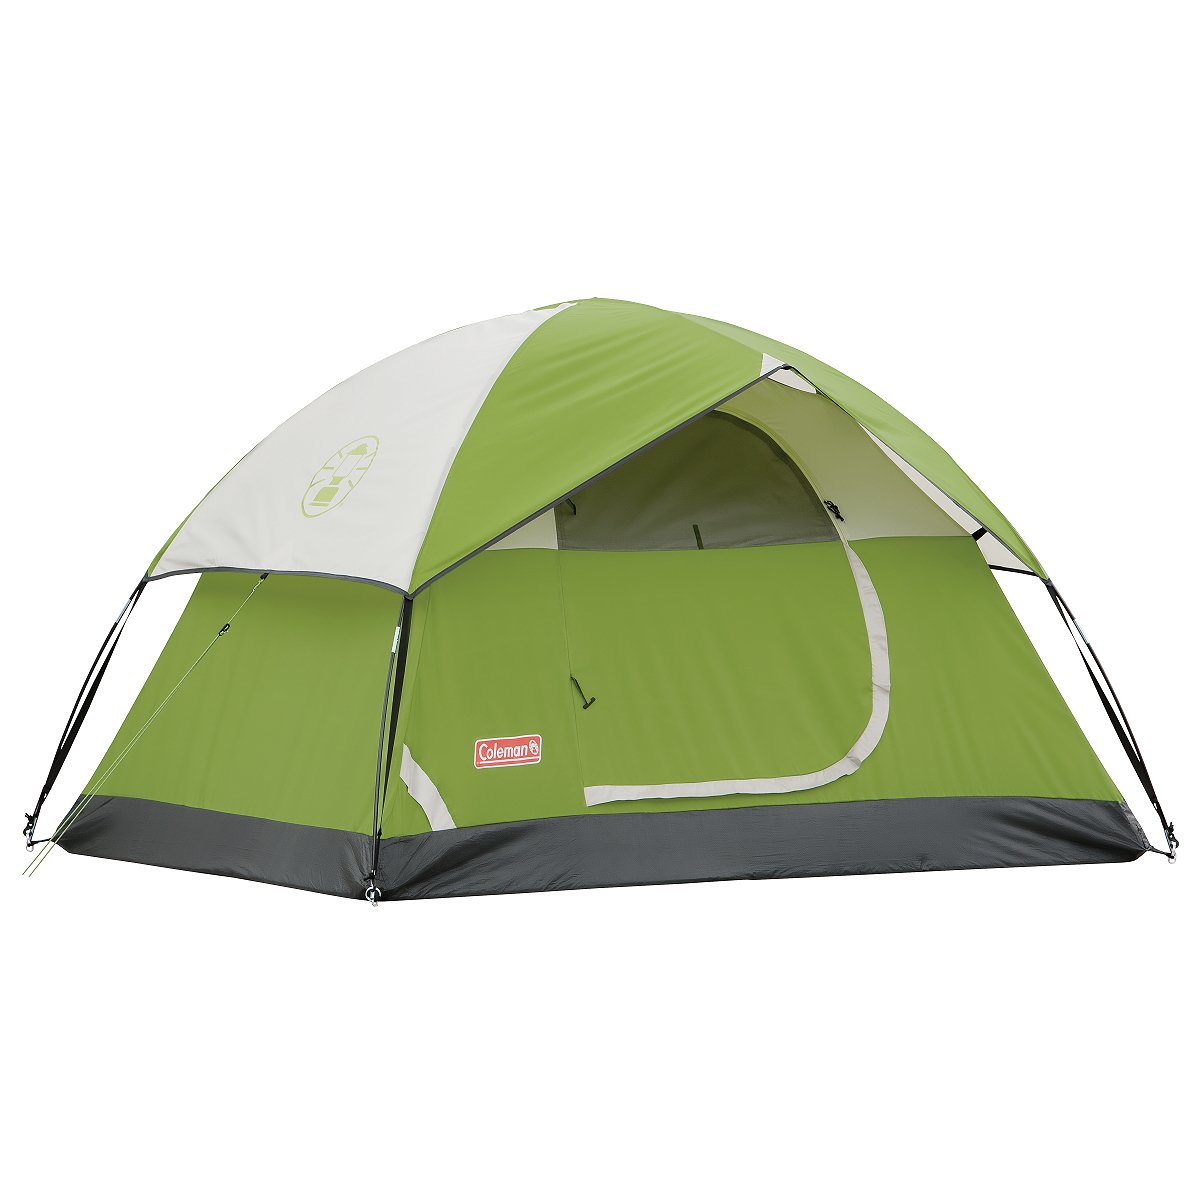 Backpacking Tent Buying Guide  Best Backpacking Tents Guide